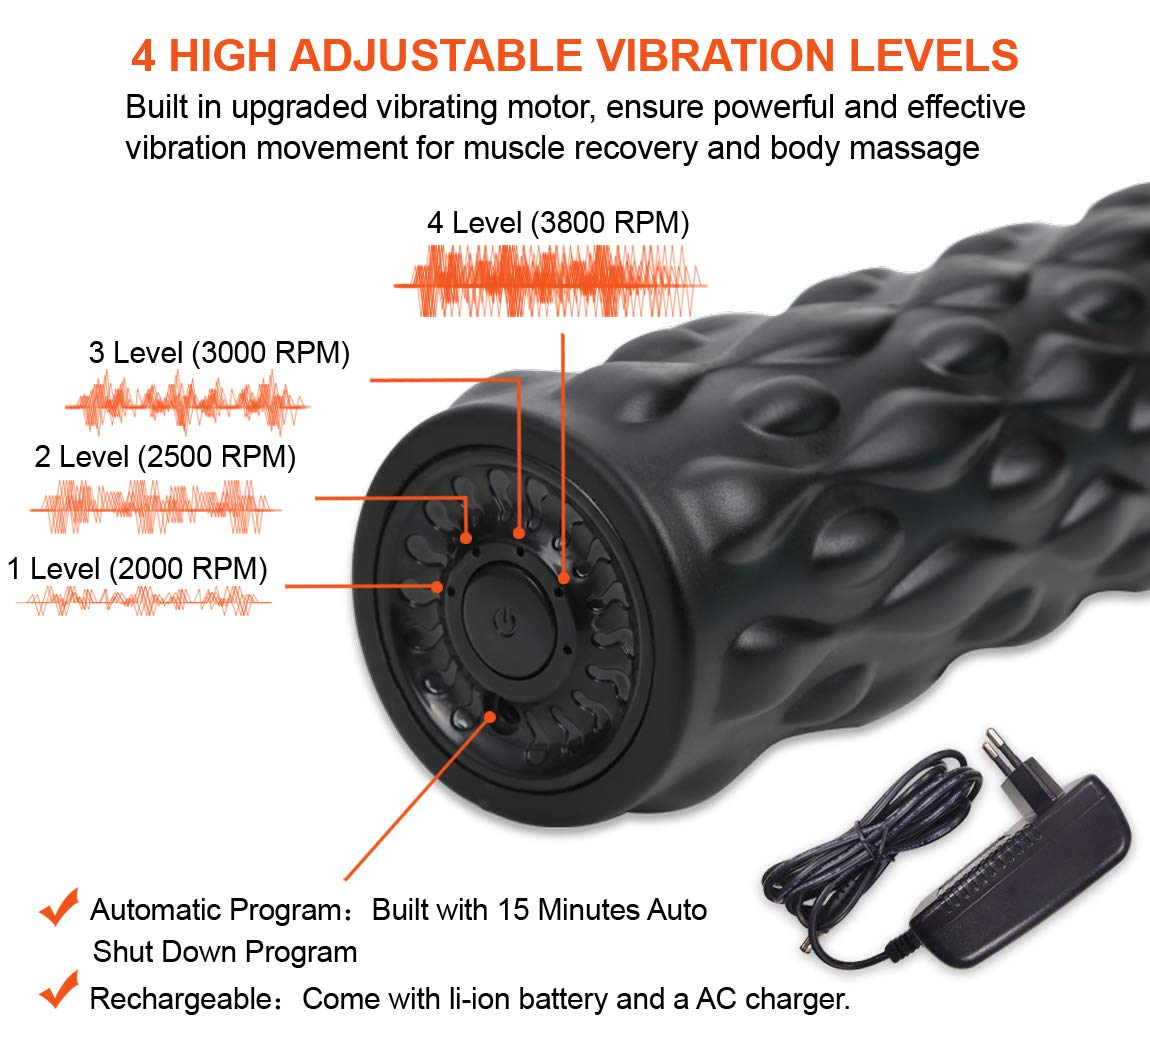 iDeer Vibration Platform Fitness Vibration Plates,Whole Body Vibration Exercise Machine w/Remote Control &Bands,Anti-Slip Fit Massage Workout Trainer Max User Weight 330lbs (Black AUS09017) by IDEER LIFE (Image #3)